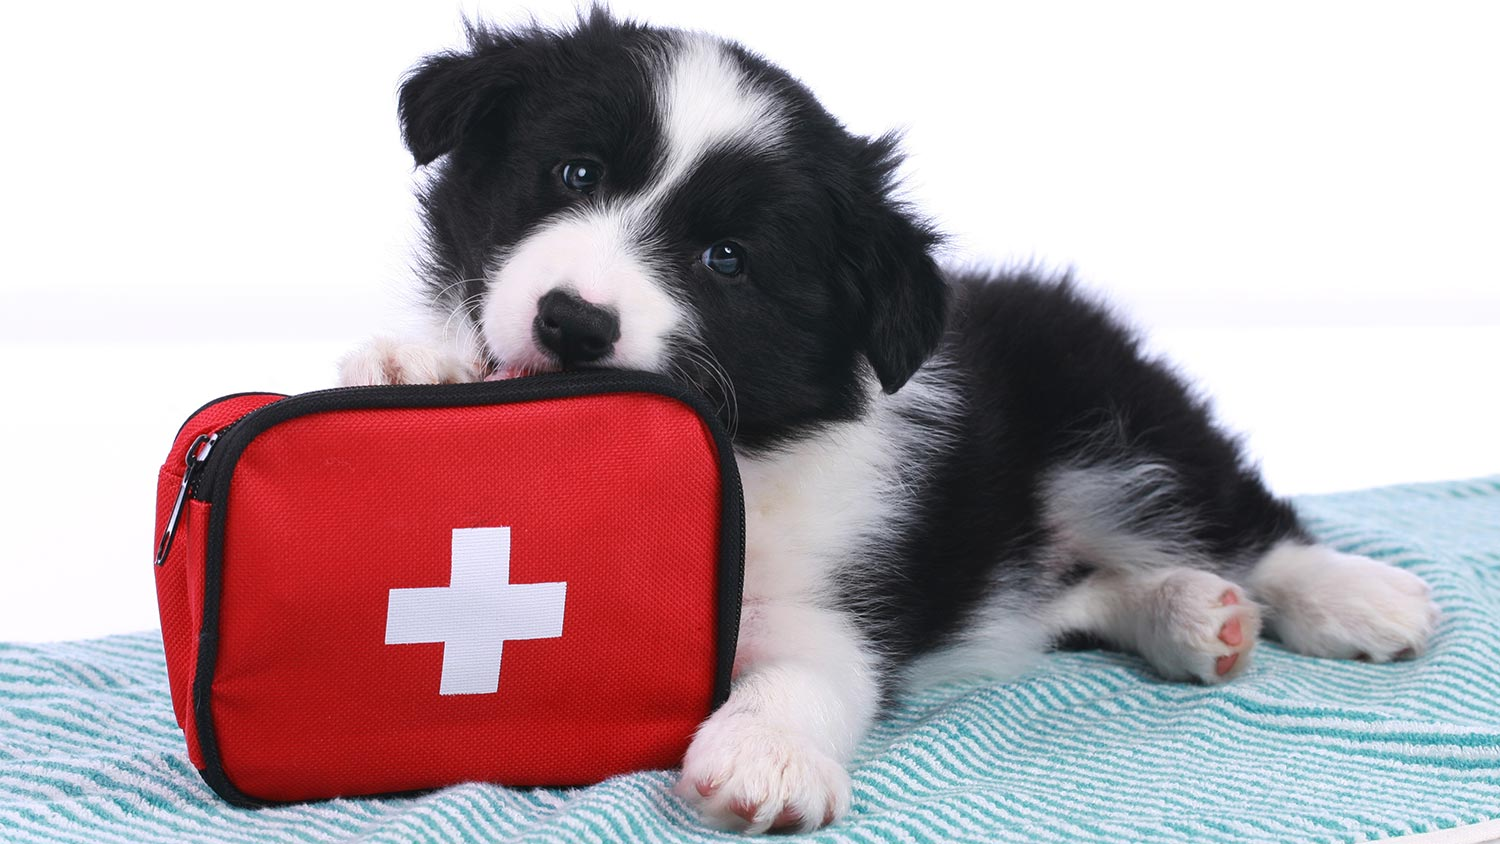 Prepare emergency kits in order for pet owners to keep pets safe